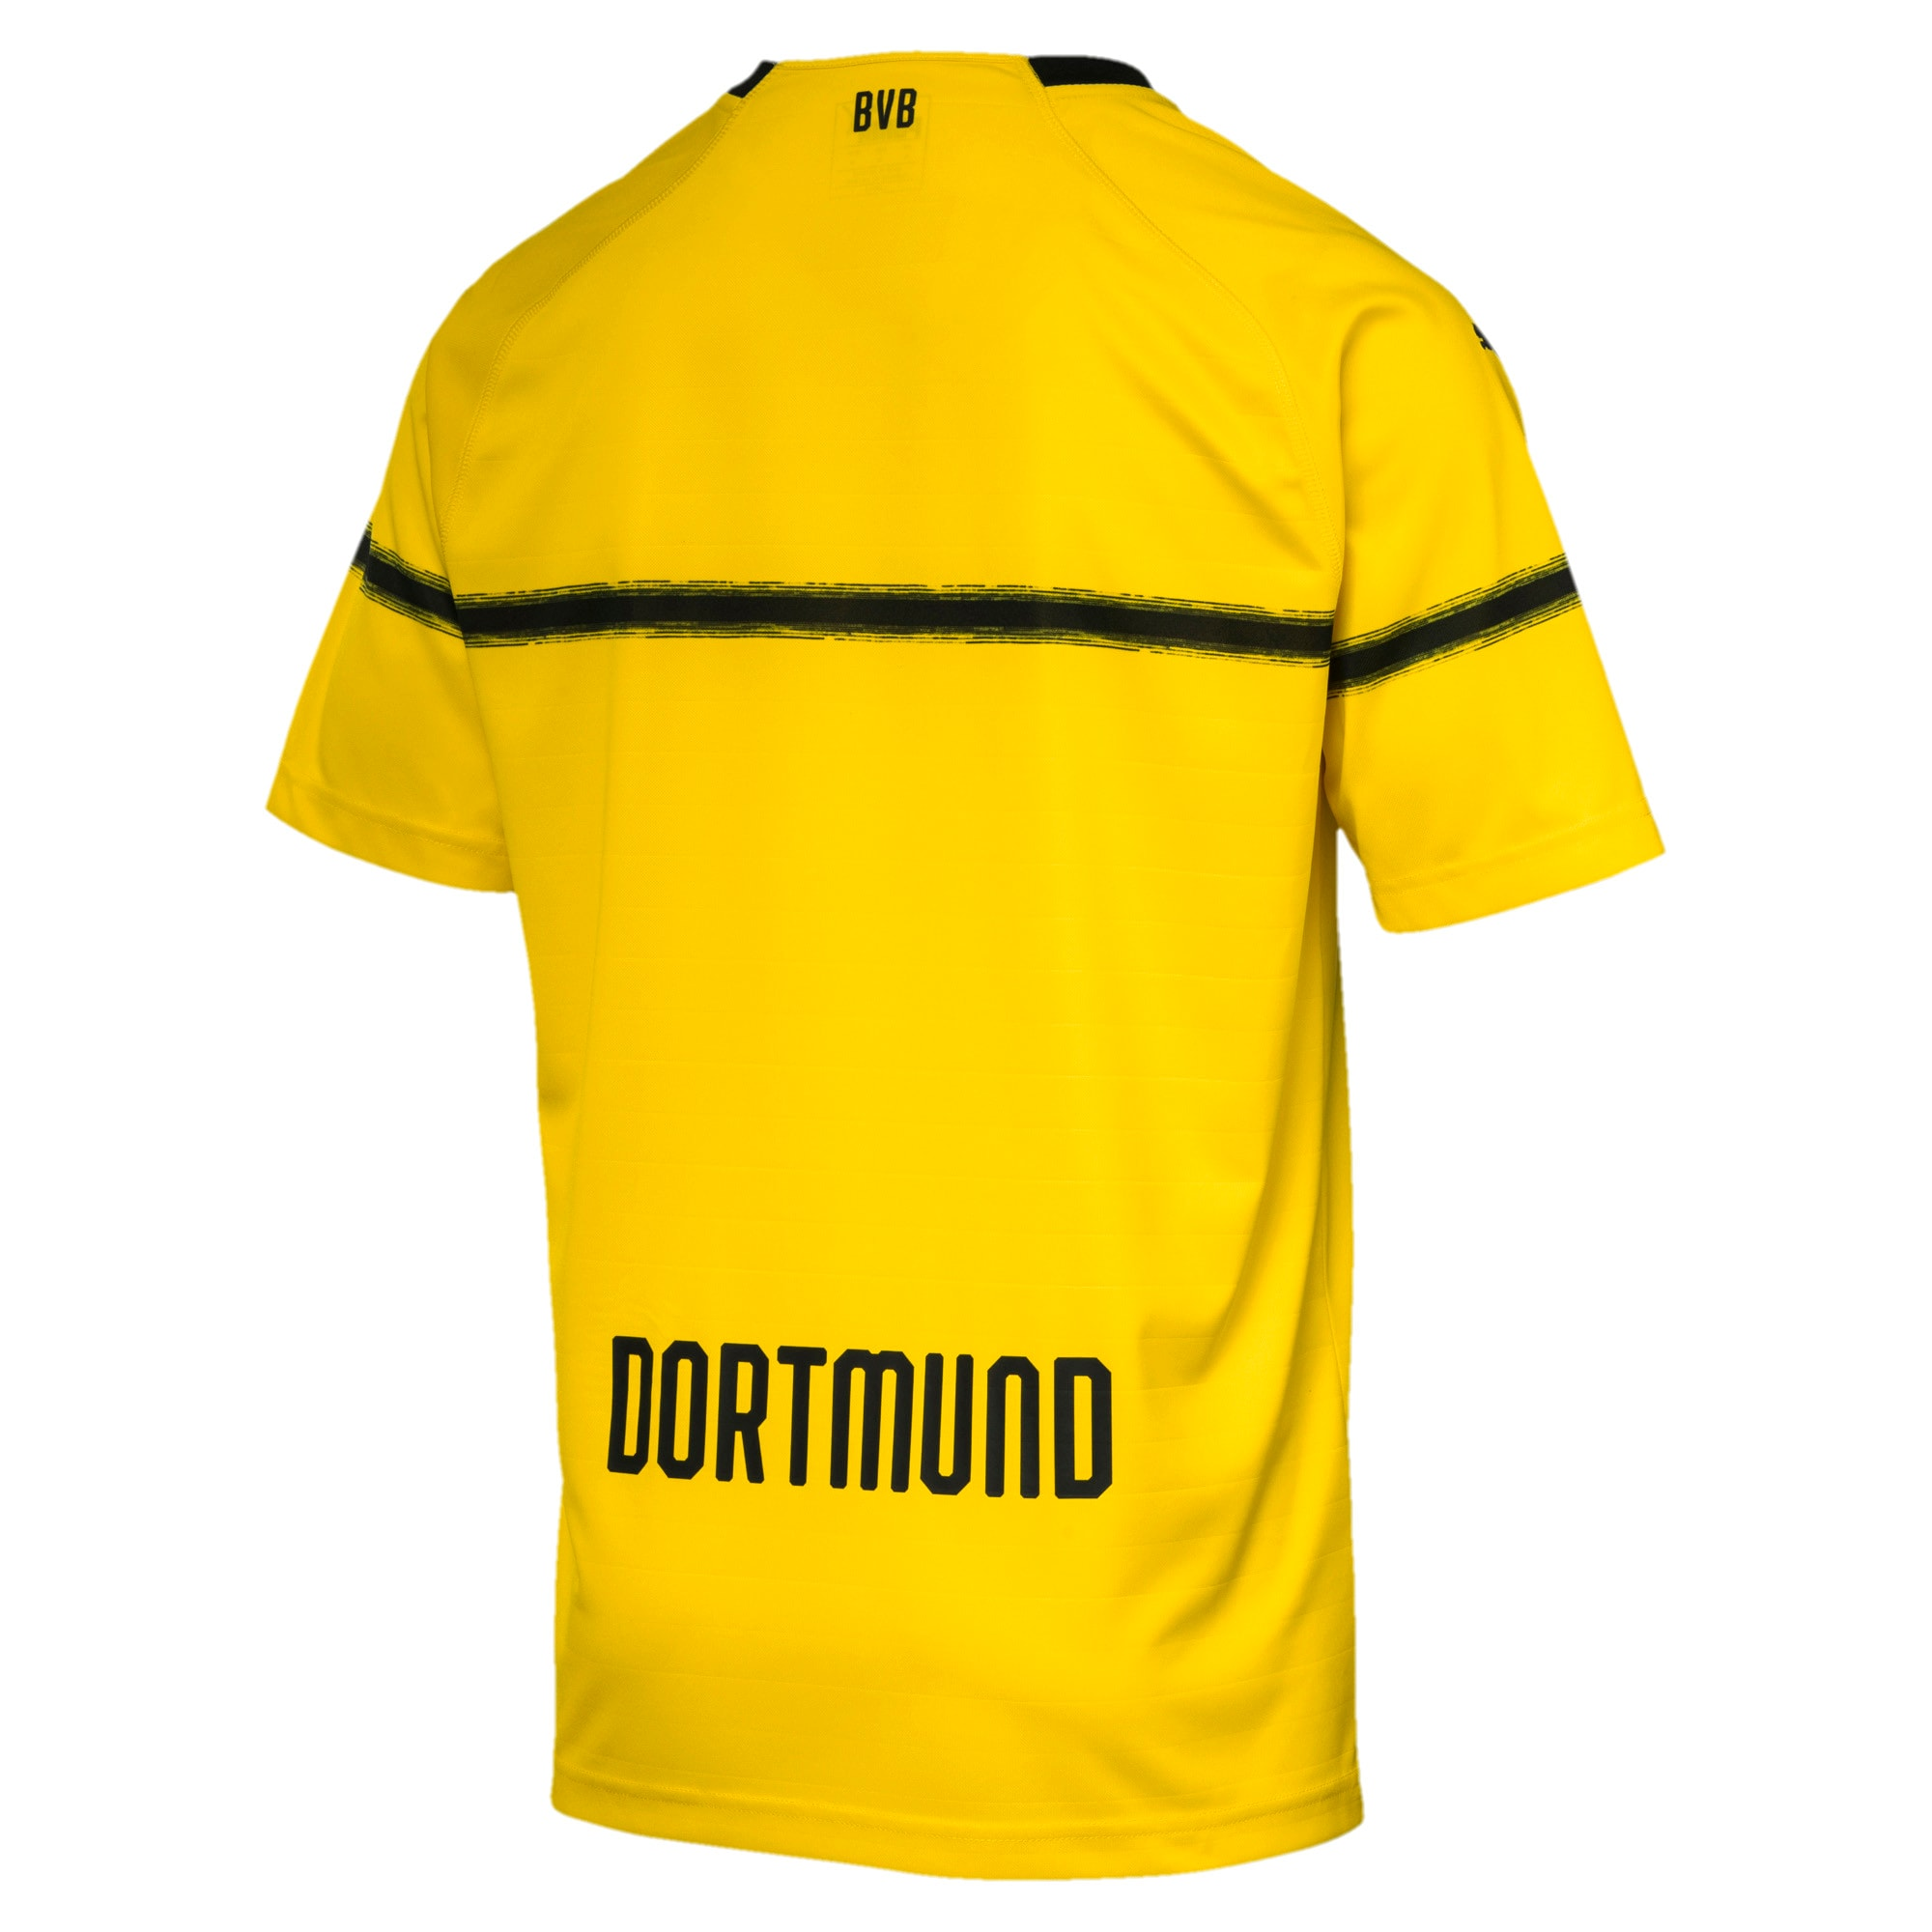 BVB Men's Cup Replica Jersey, Cyber Yellow, large